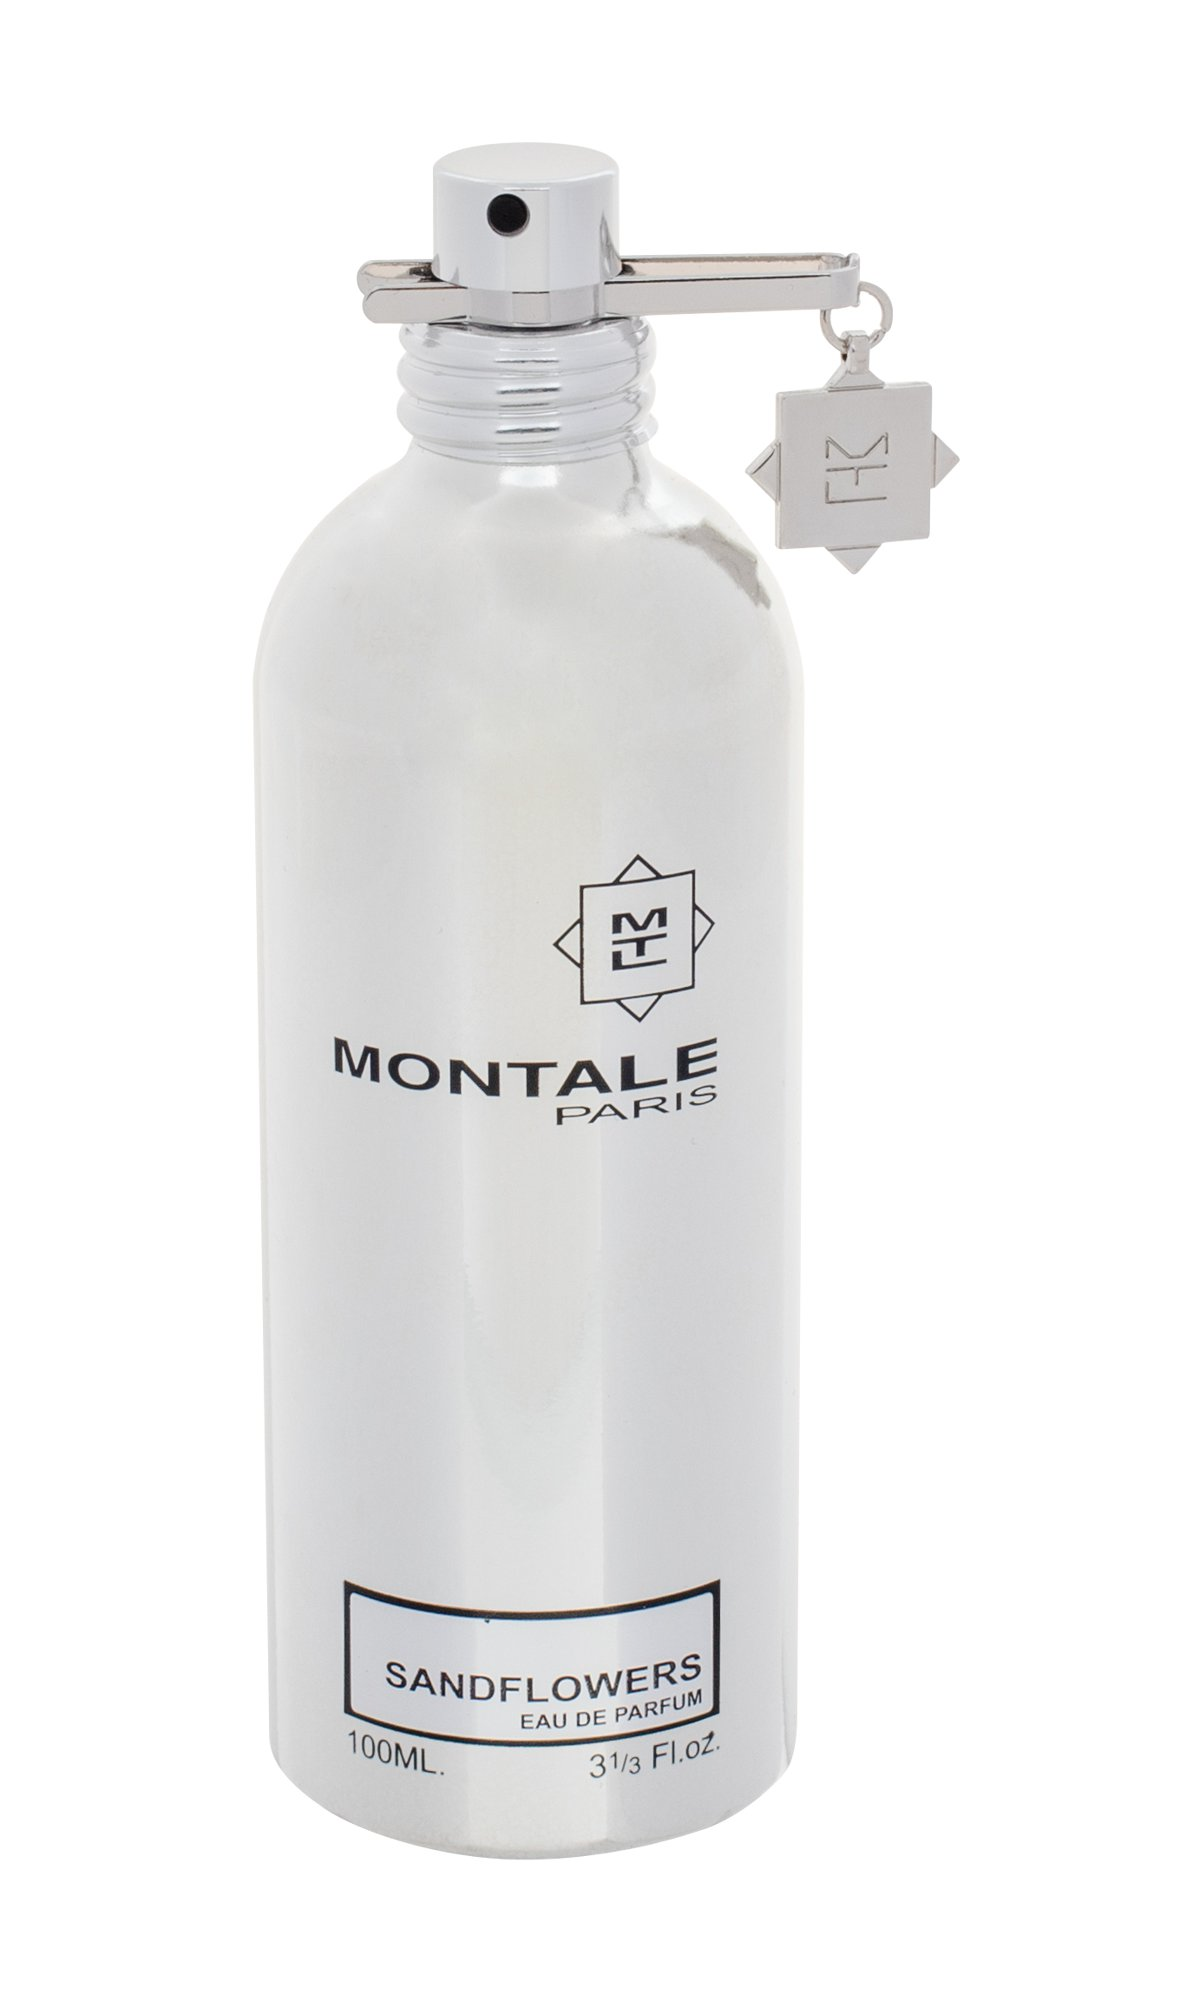 Montale Paris Sandflowers, Parfumovaná voda 100ml